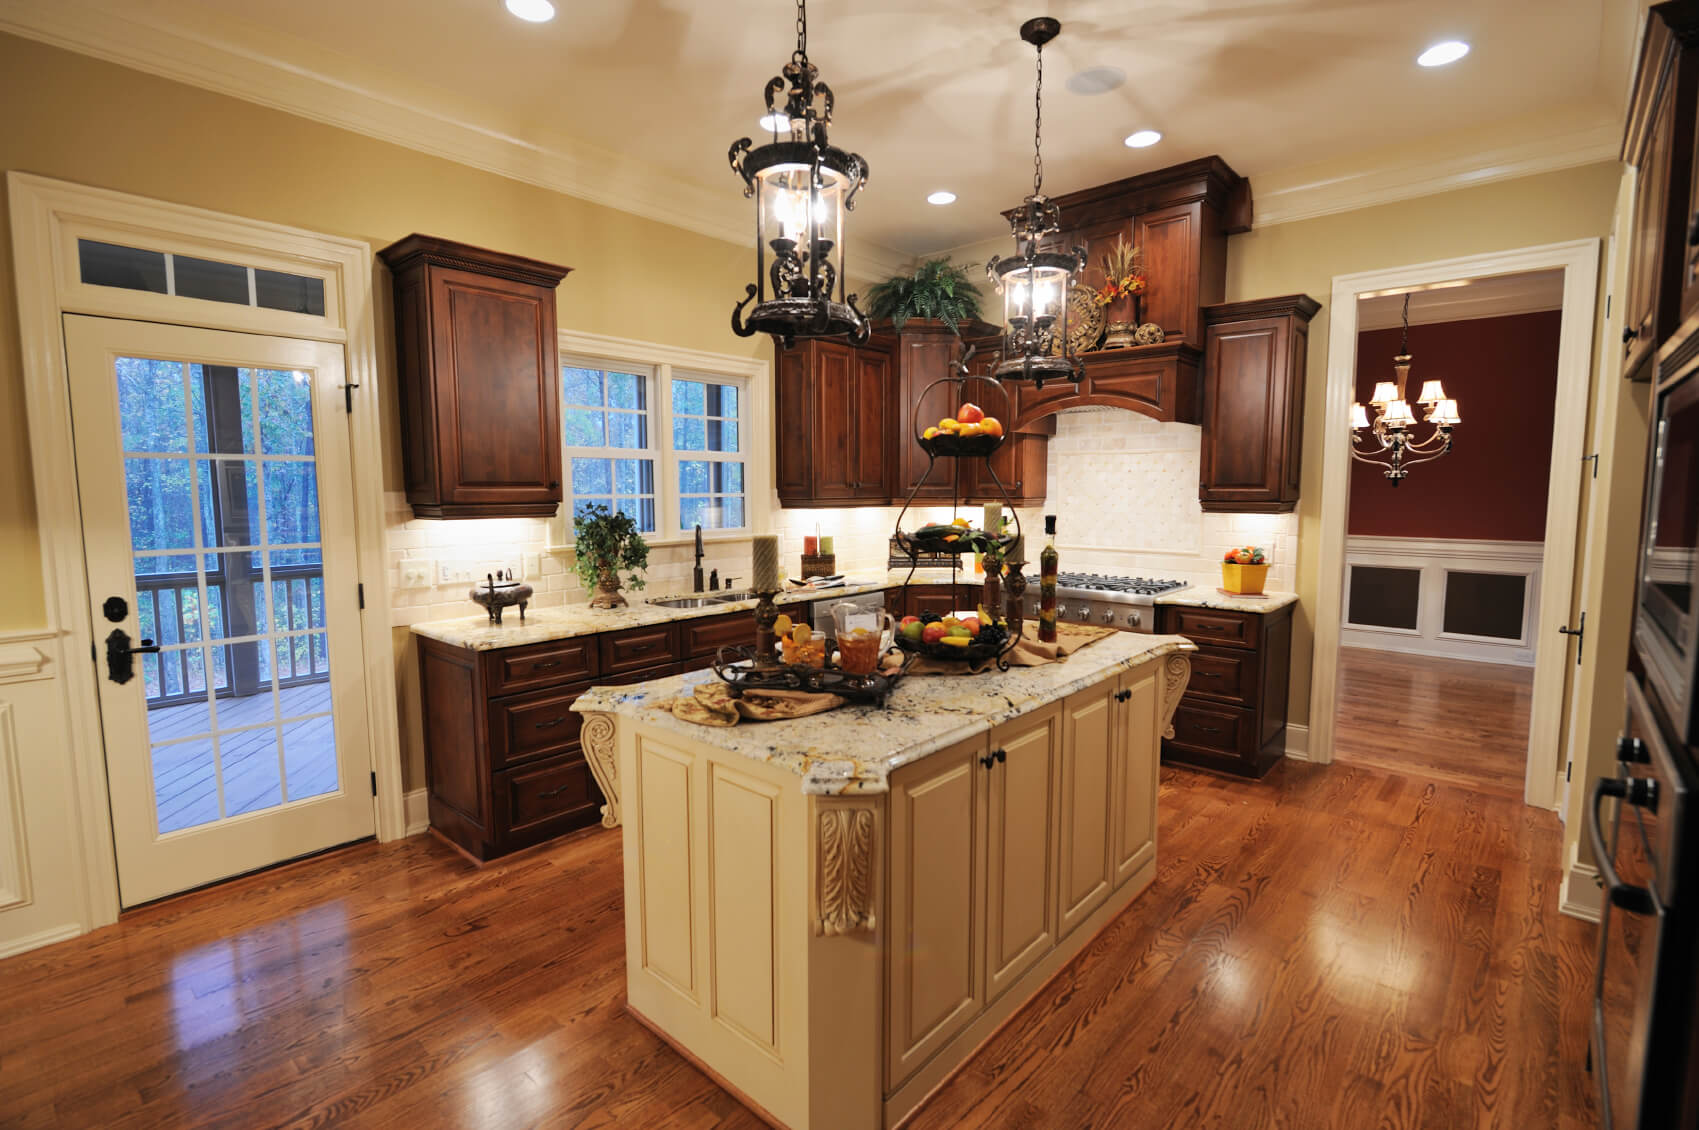 Lush dark wood cabinetry contrasts with beige island and wall color in